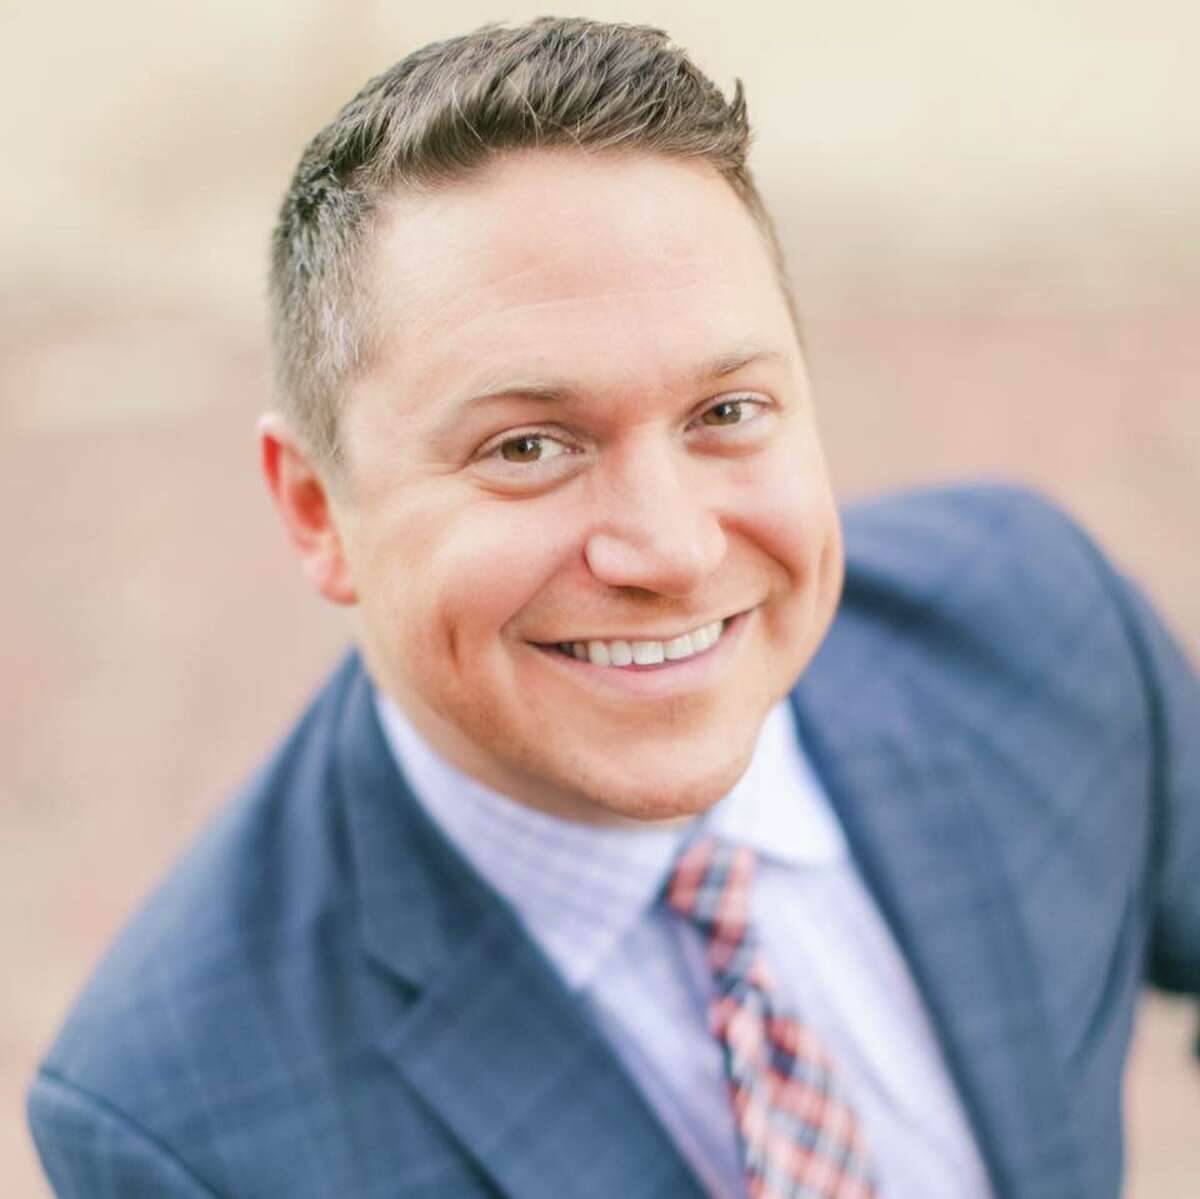 After 13 years at KENS 5, meteorologist Jared Silveman has said goodbye to the weather seat.